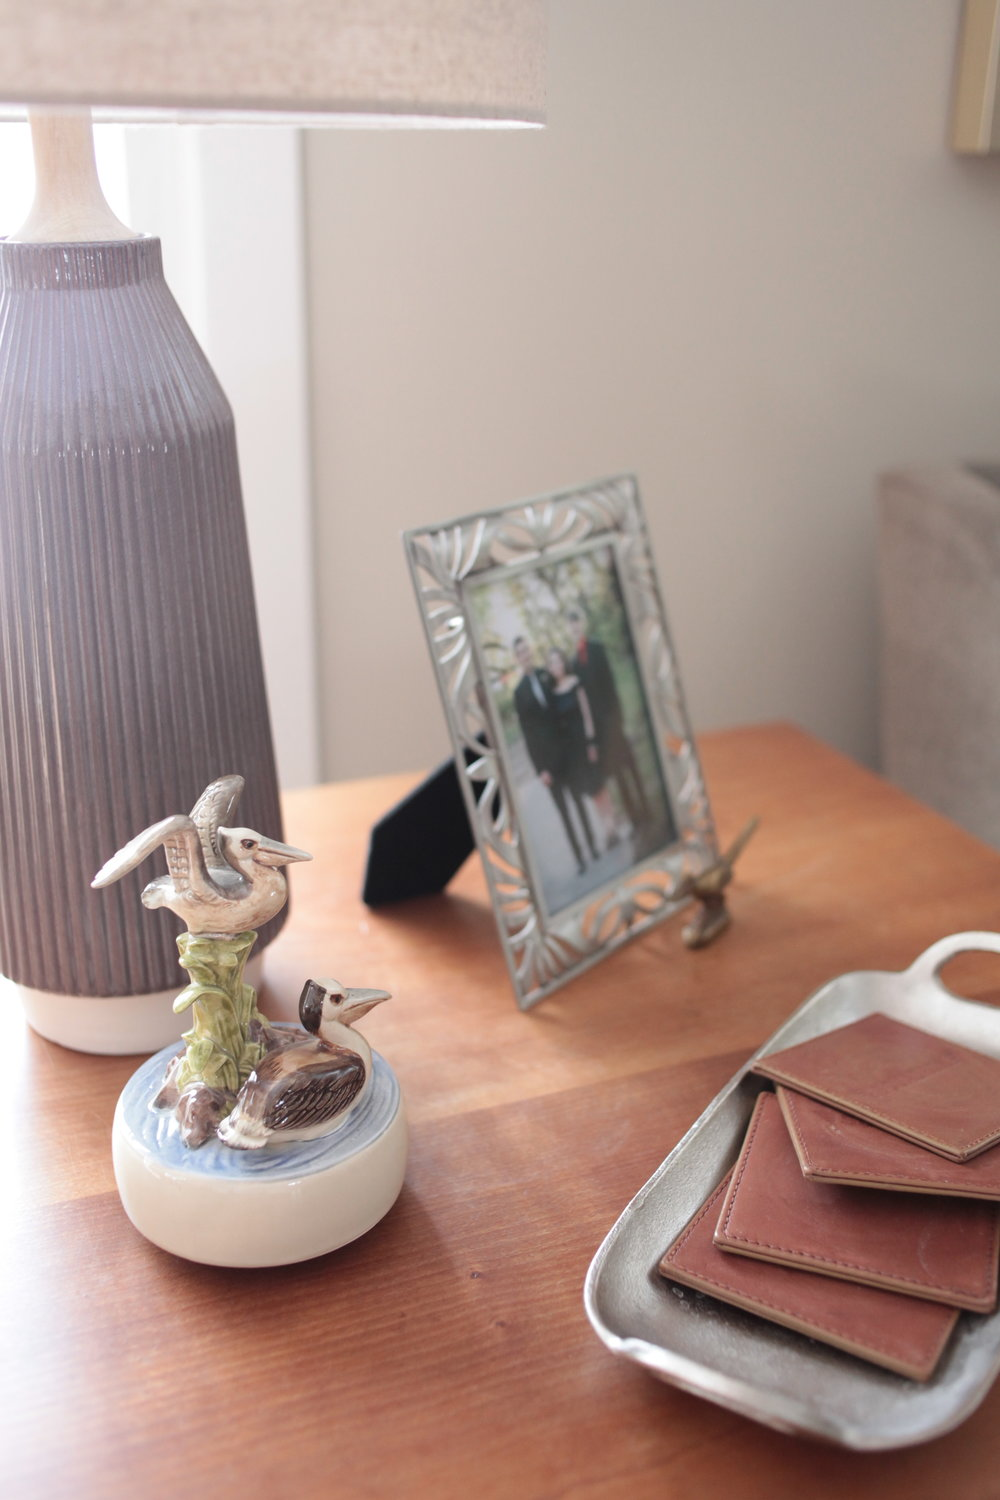 West Elm Roar + Rabbit™ Ripple Ceramic Table Lamp and Silver Tray.JPG